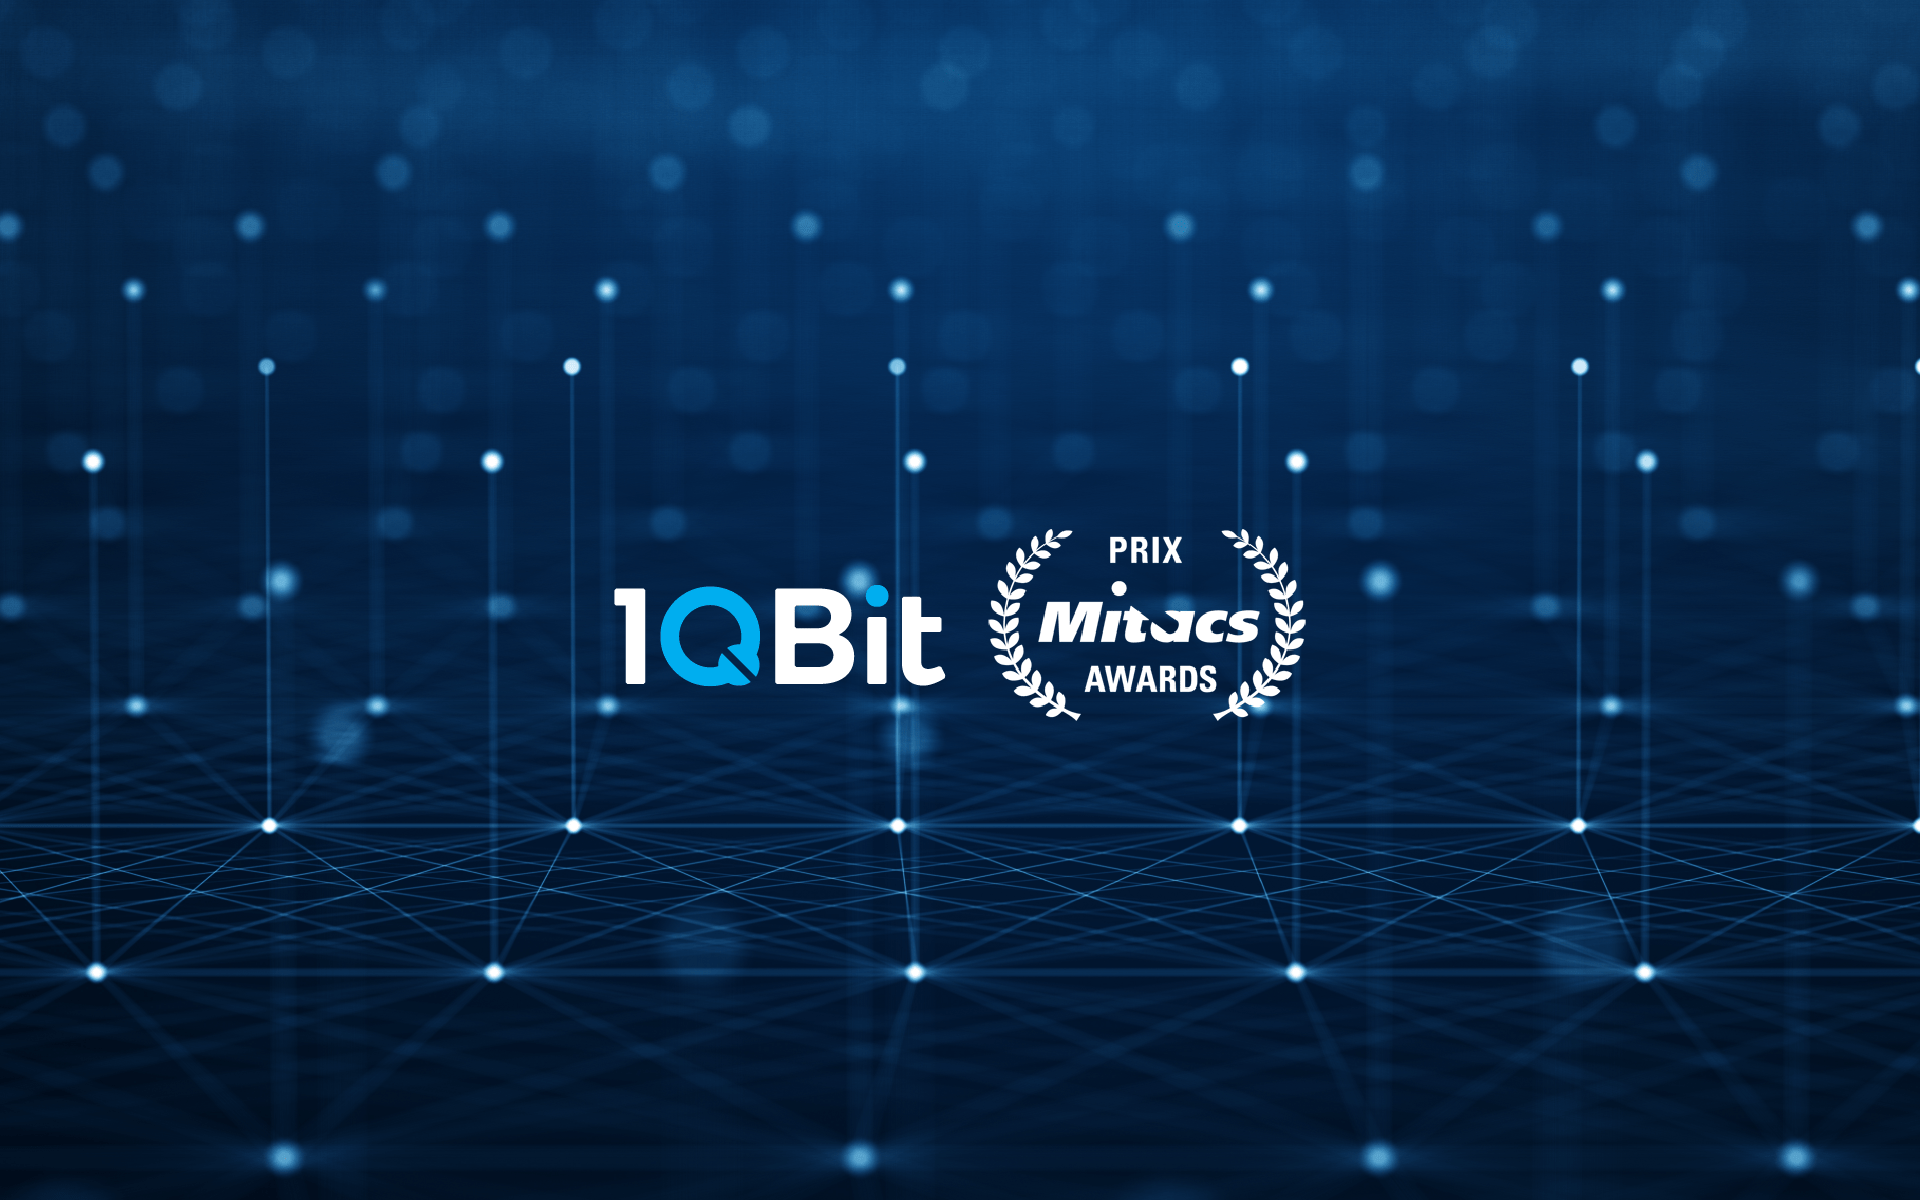 Linking Academia and Business, 1QBit Wins the Mitacs Award for Exceptional Leadership — Industry